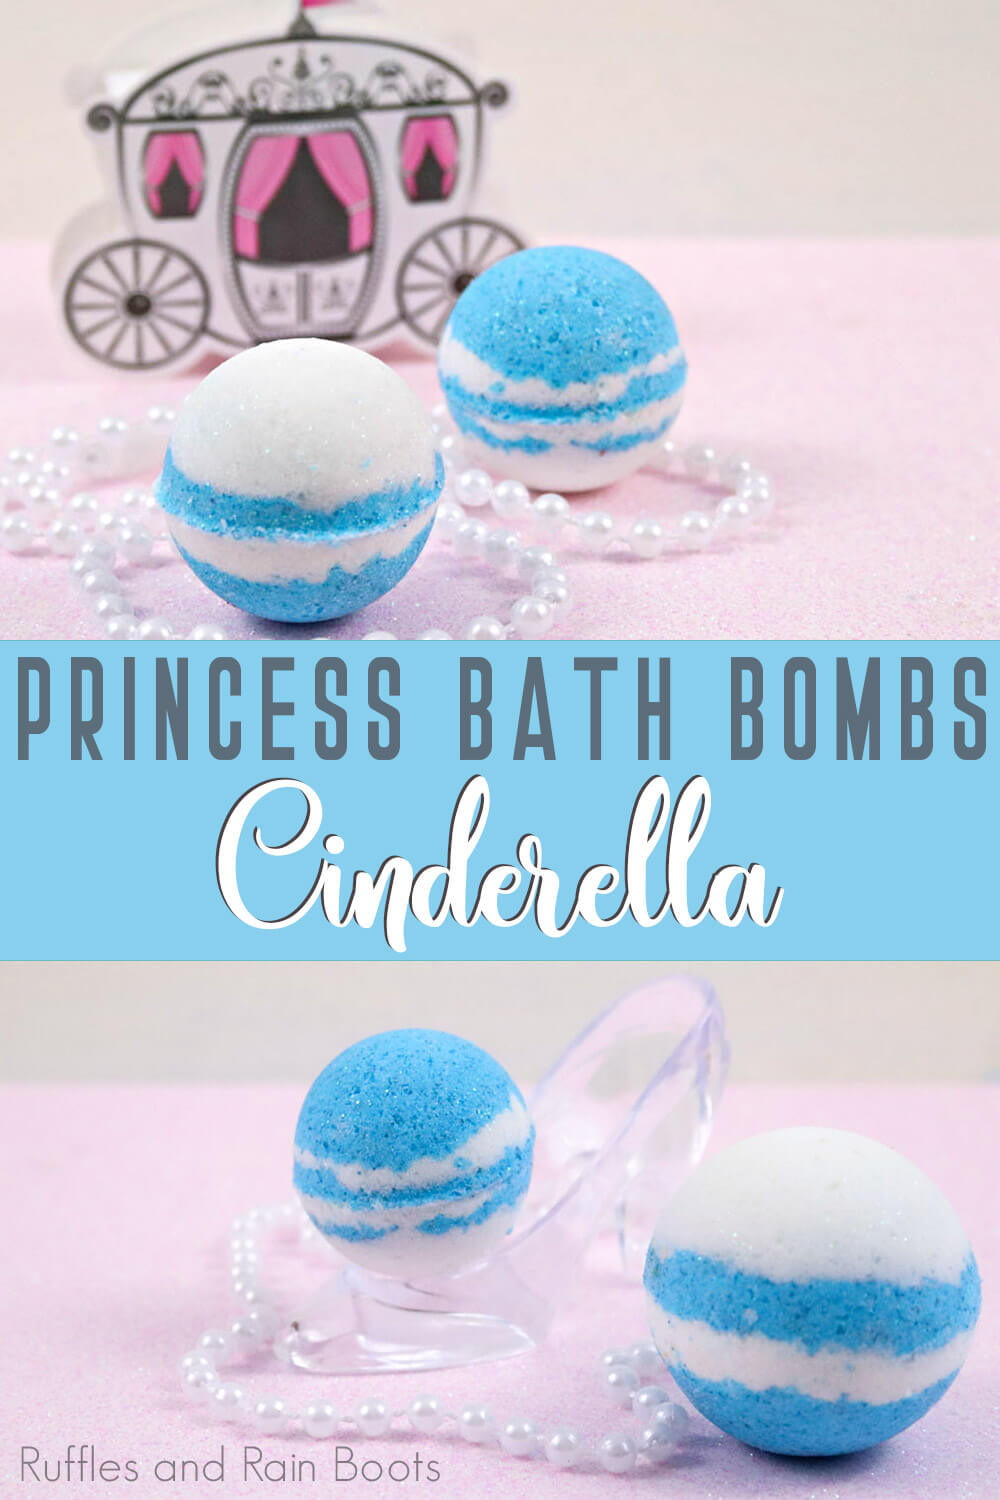 photo collage of cinderella bath bombs with blue and white colors with text which reads princess bath bombs cinderella